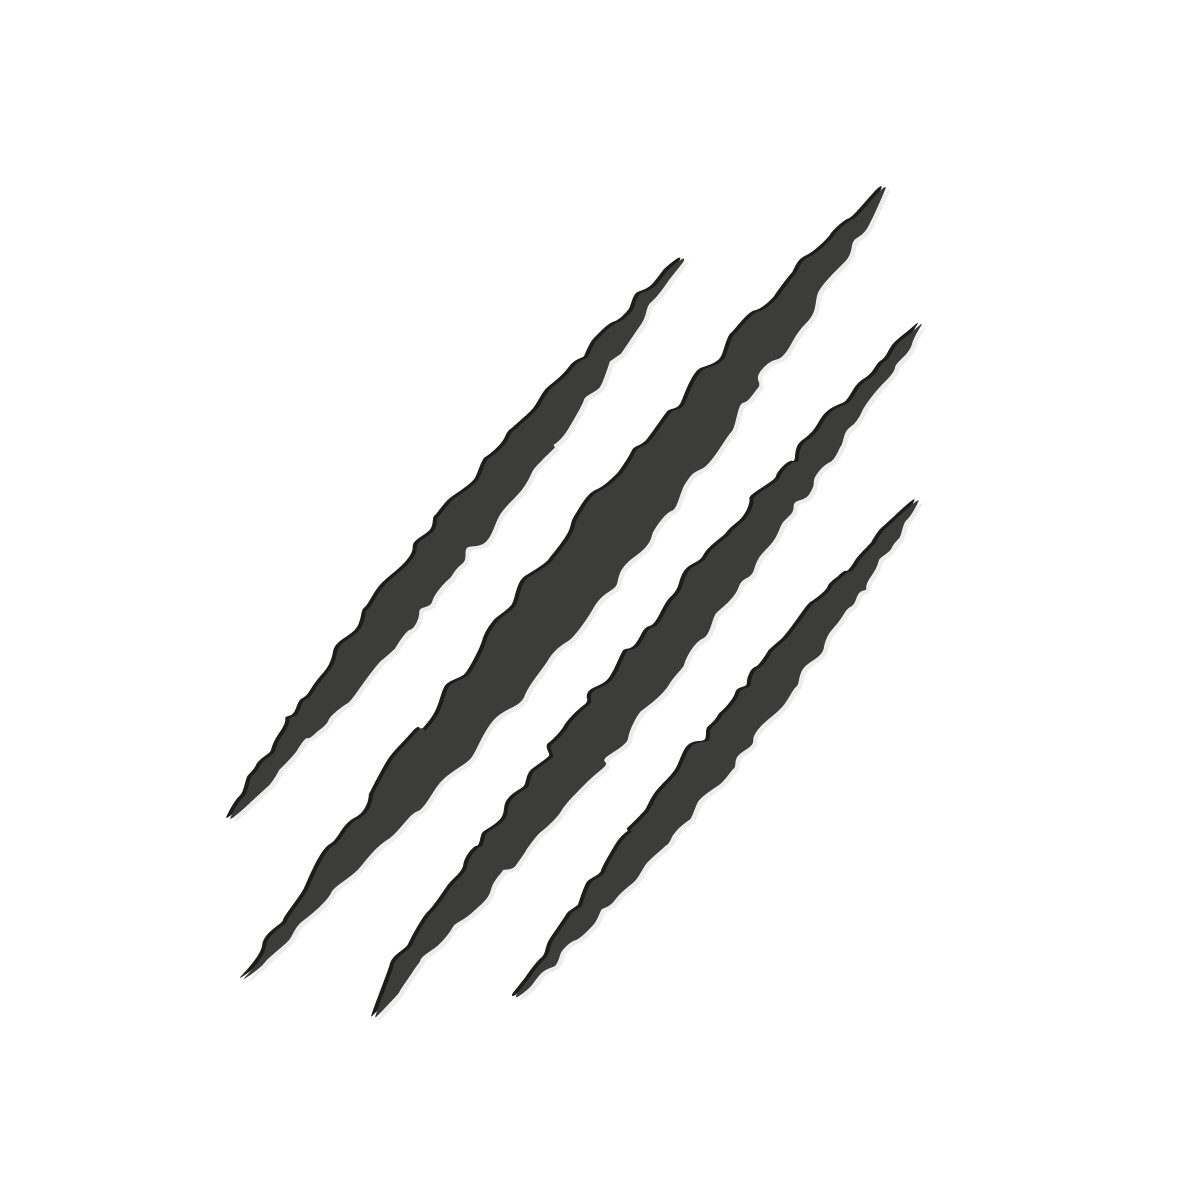 Monster tear claw scratch mark ~ Illustrations ~ Creative